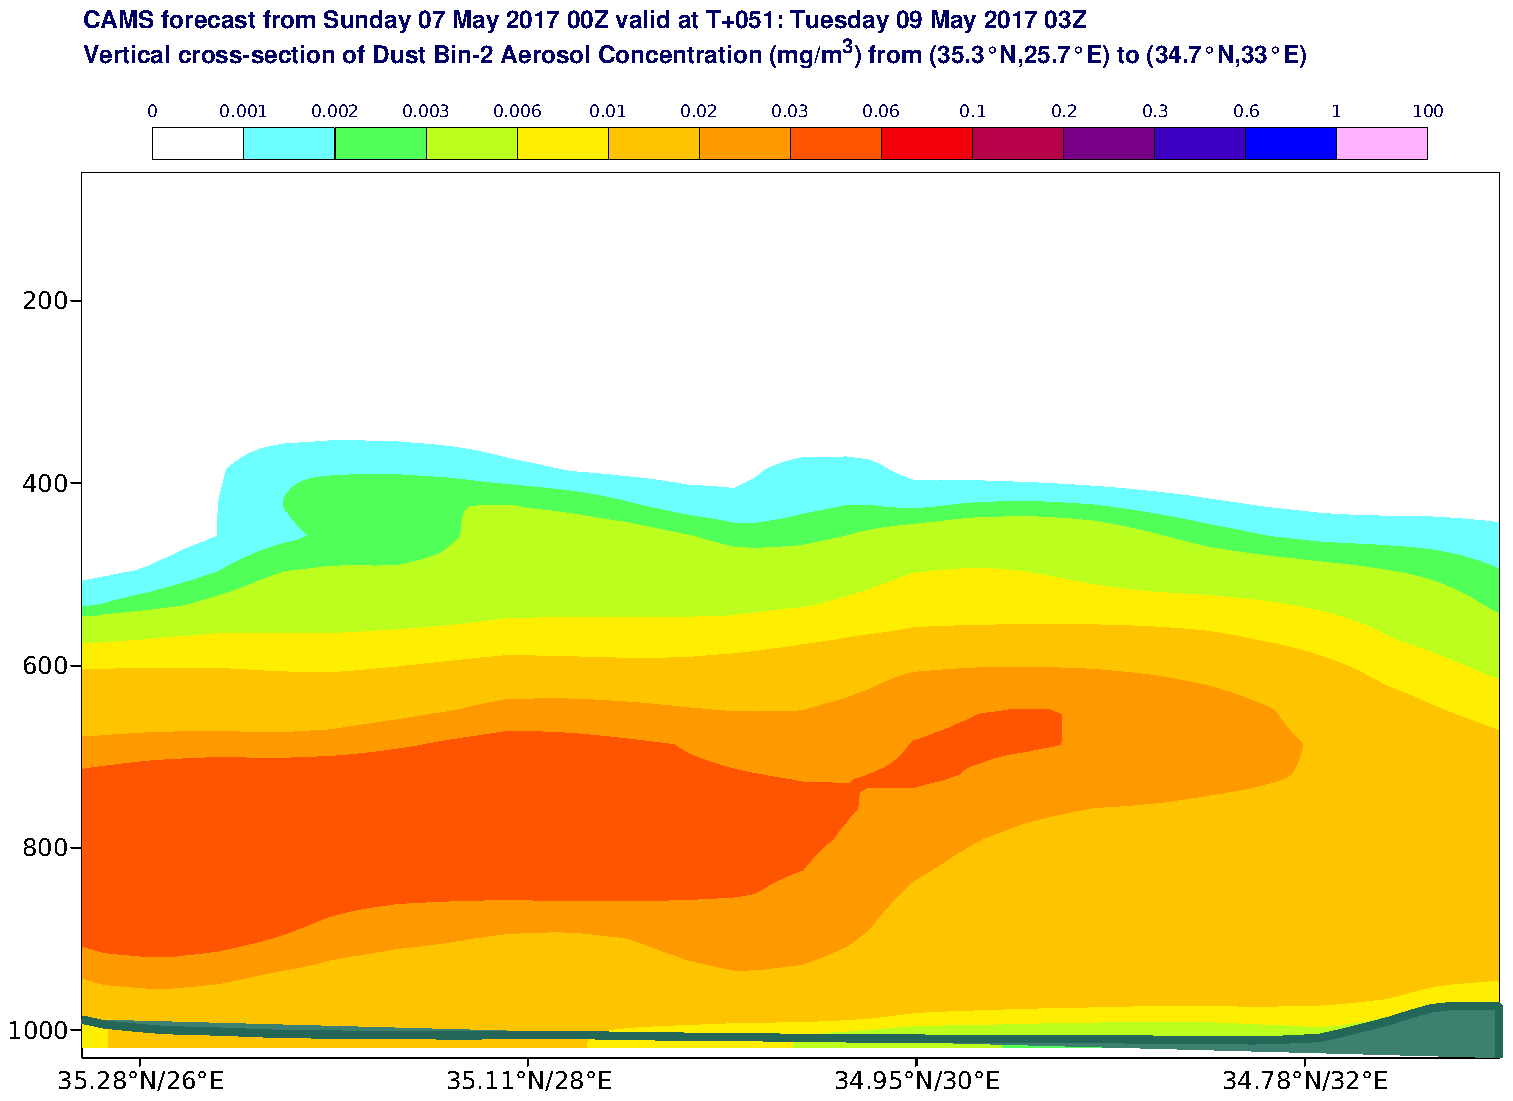 Vertical cross-section of Dust Bin-2 Aerosol Concentration (mg/m3) valid at T51 - 2017-05-09 03:00